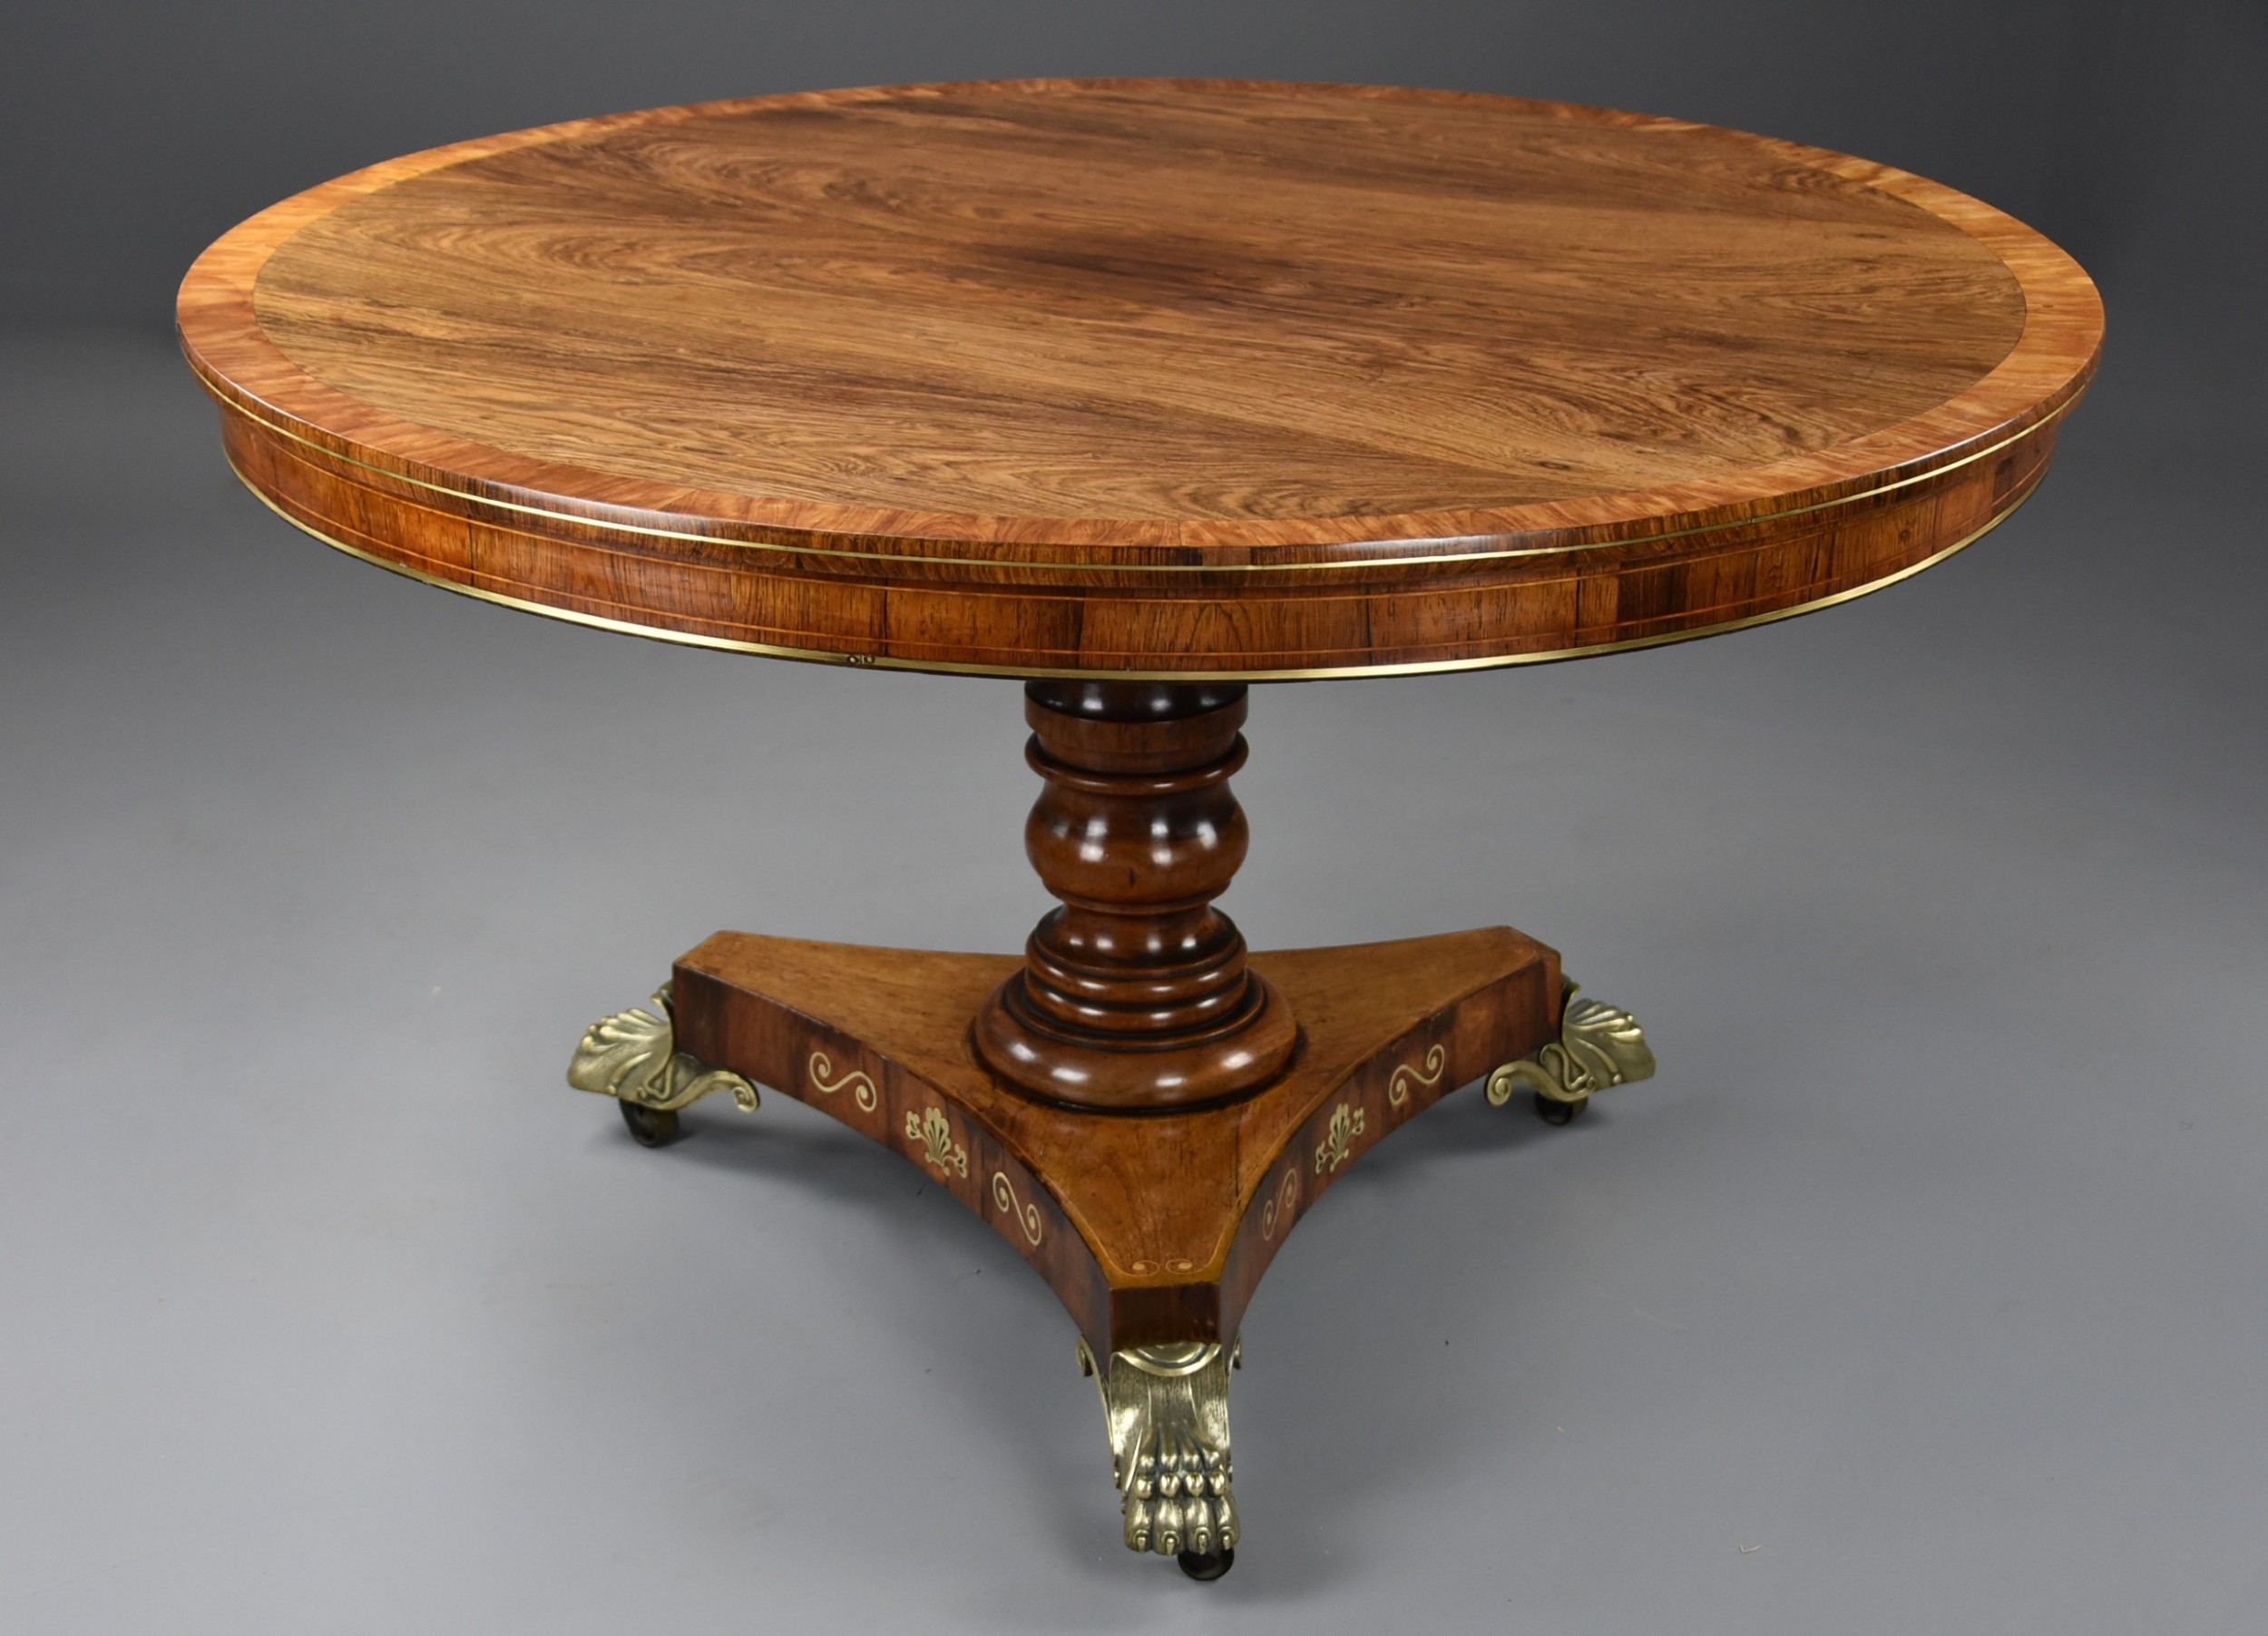 fine quality regency rosewood tilt top centre table of fine patina